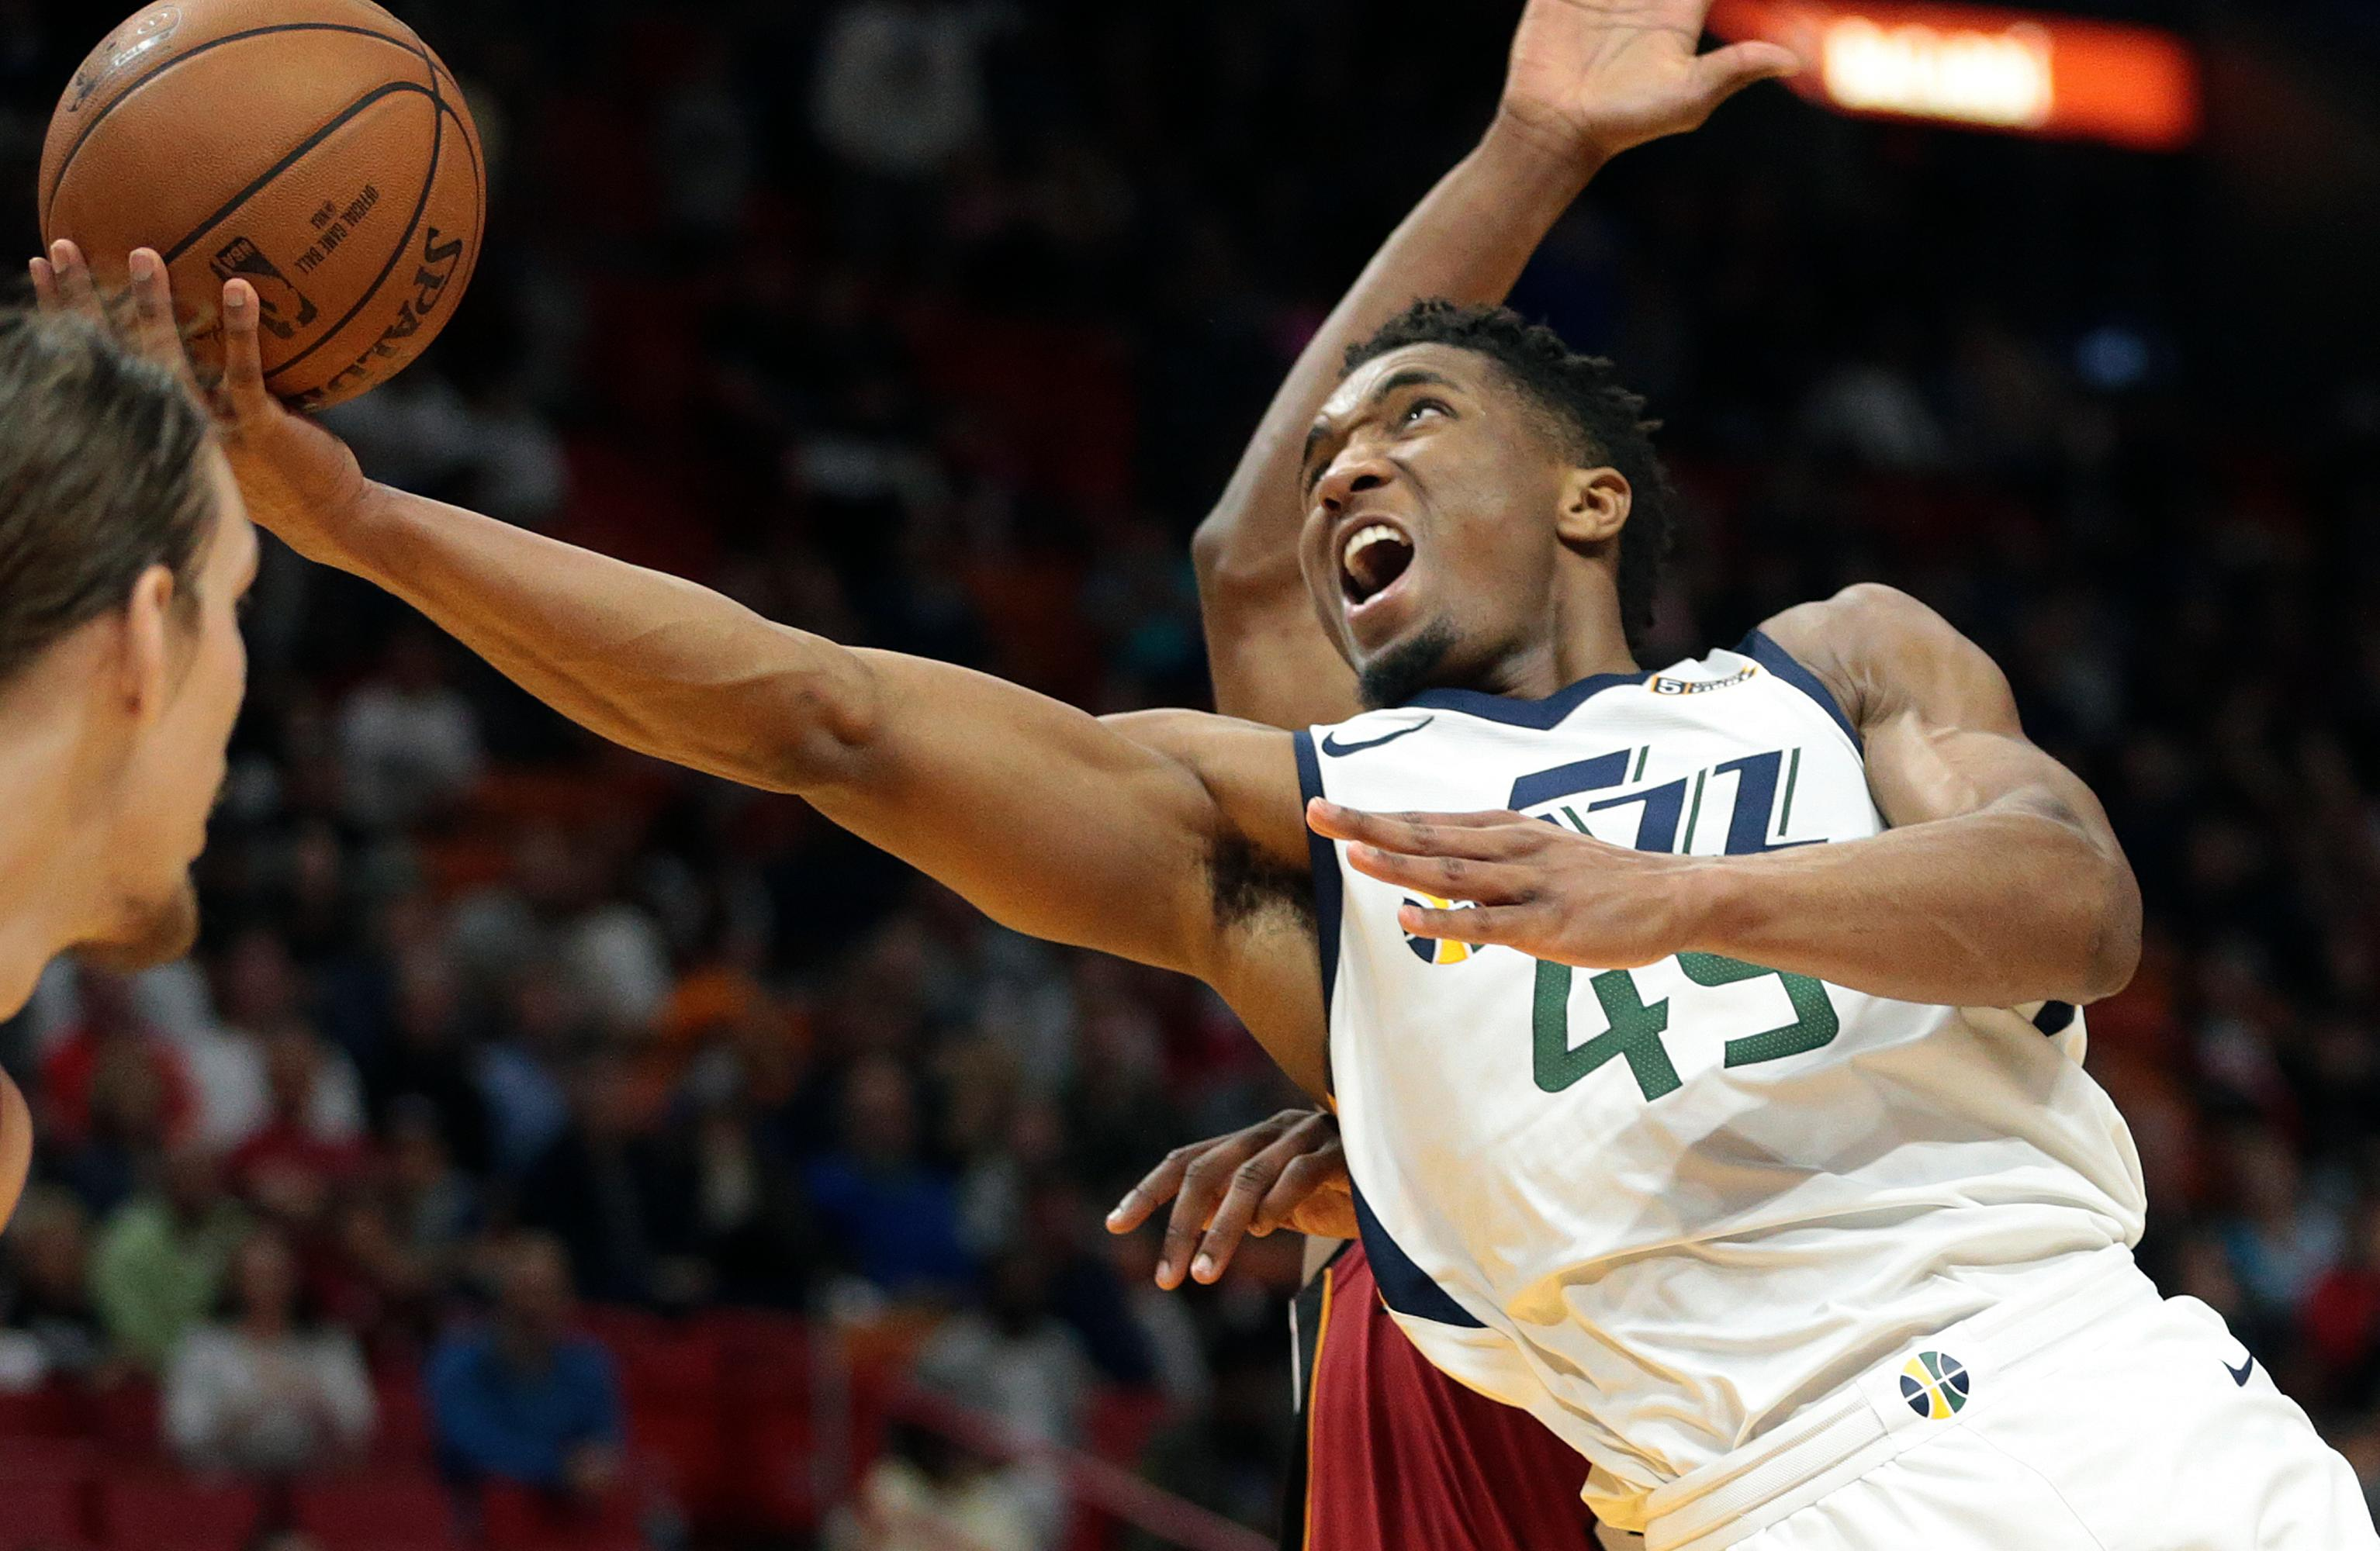 Utah Jazz guard Donovan Mitchell (45) goes to the basket against the Miami Heat during the second half of an NBA basketball game, Sunday, Jan. 7, 2018, in Miami. (AP Photo/Joel Auerbach)